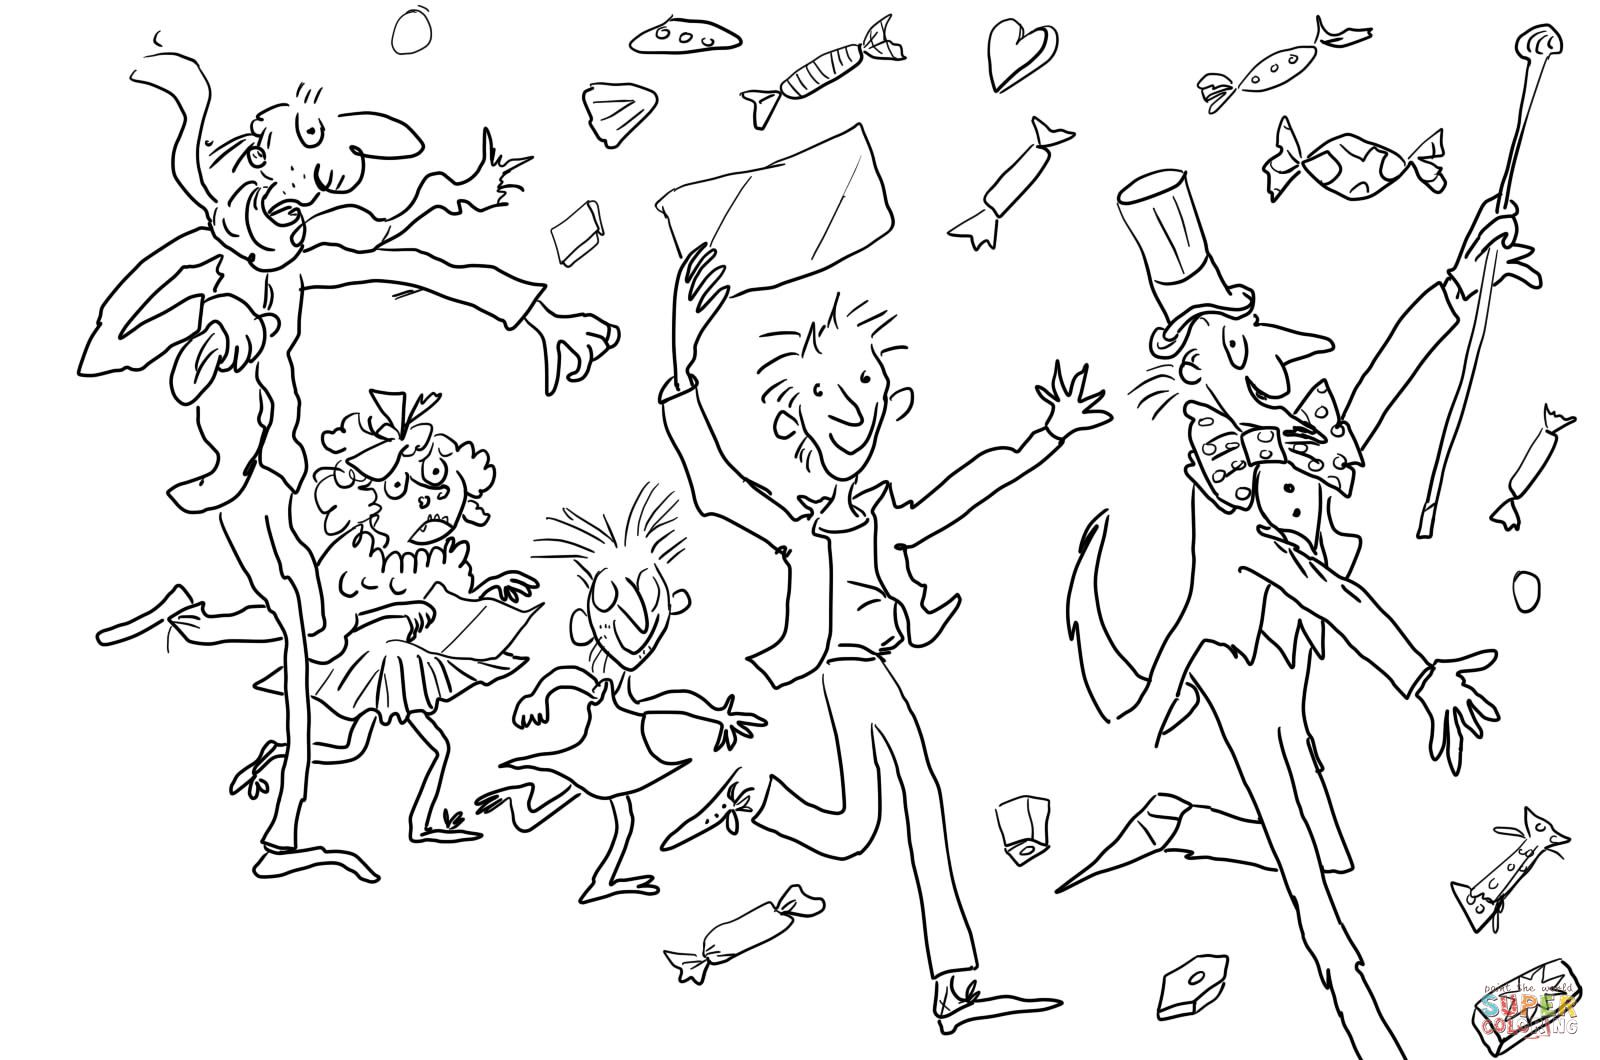 willy wonka and the chocolate factory coloring pages umpa lumpa coloring pages coloring pages willy wonka factory and the pages coloring chocolate